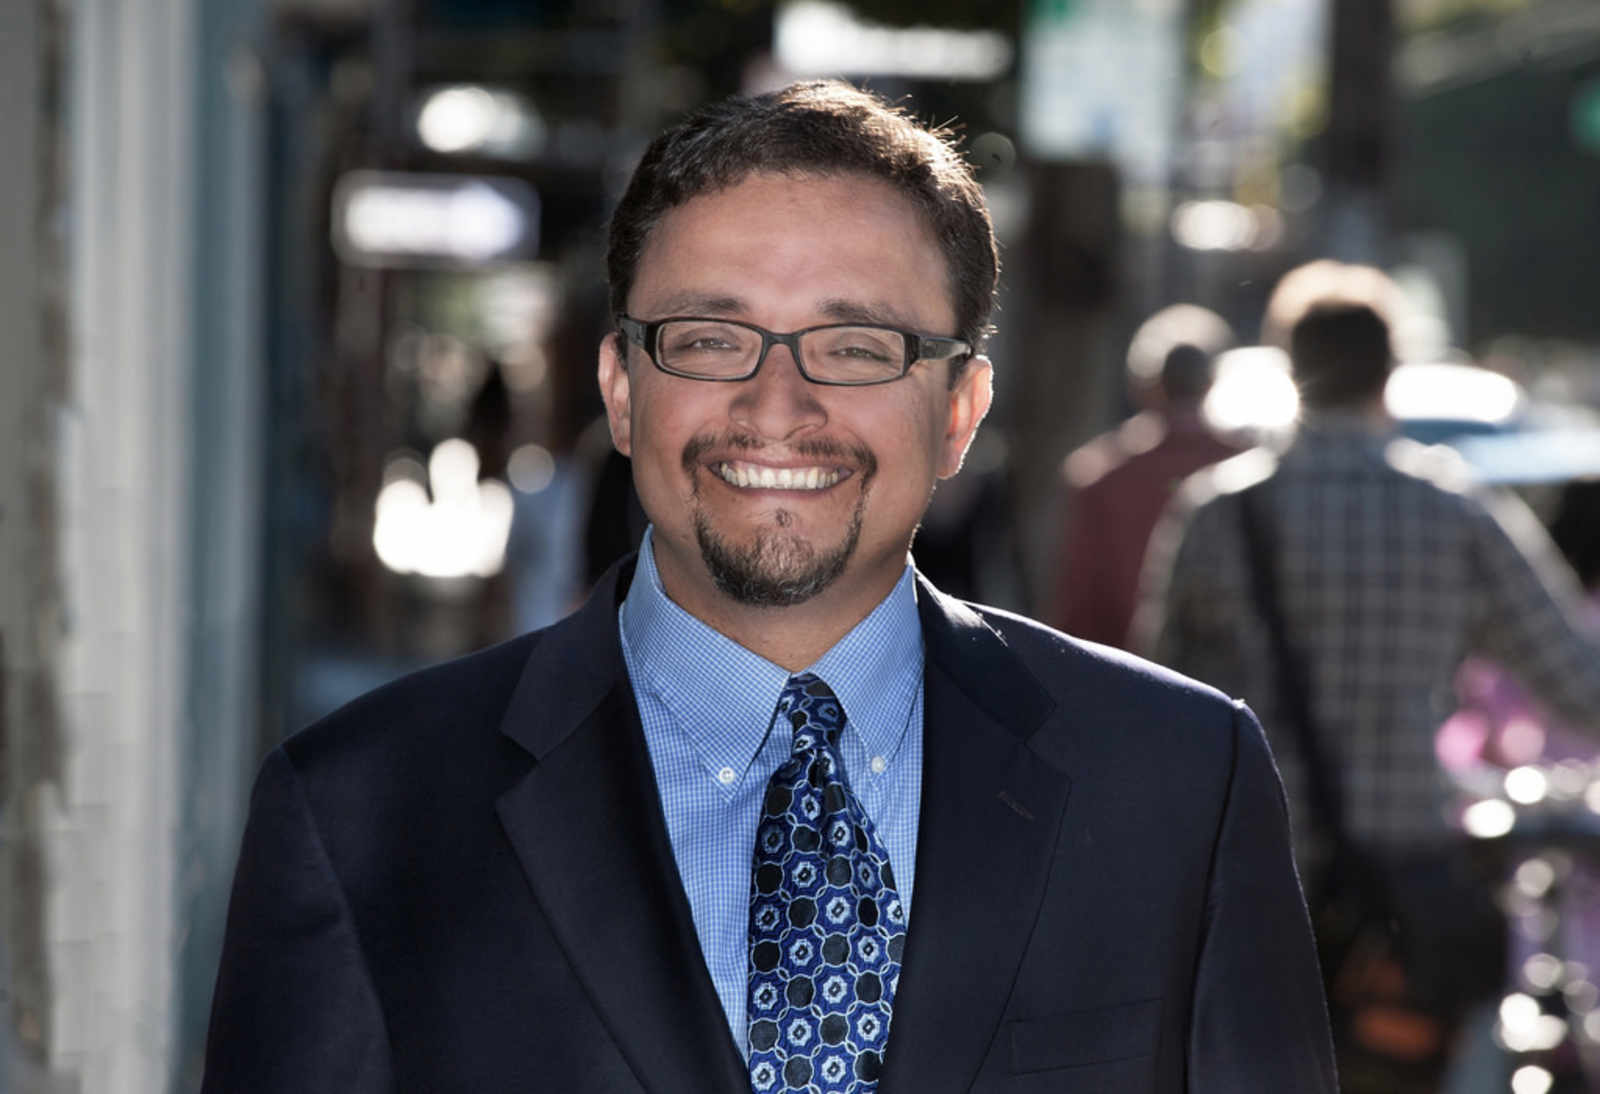 tune in as we interview supervisor david campos this afternoon on we ve written about the race to fill tom ammiano s seat in the california state assembly in the past in which san francisco supervisors david campos and